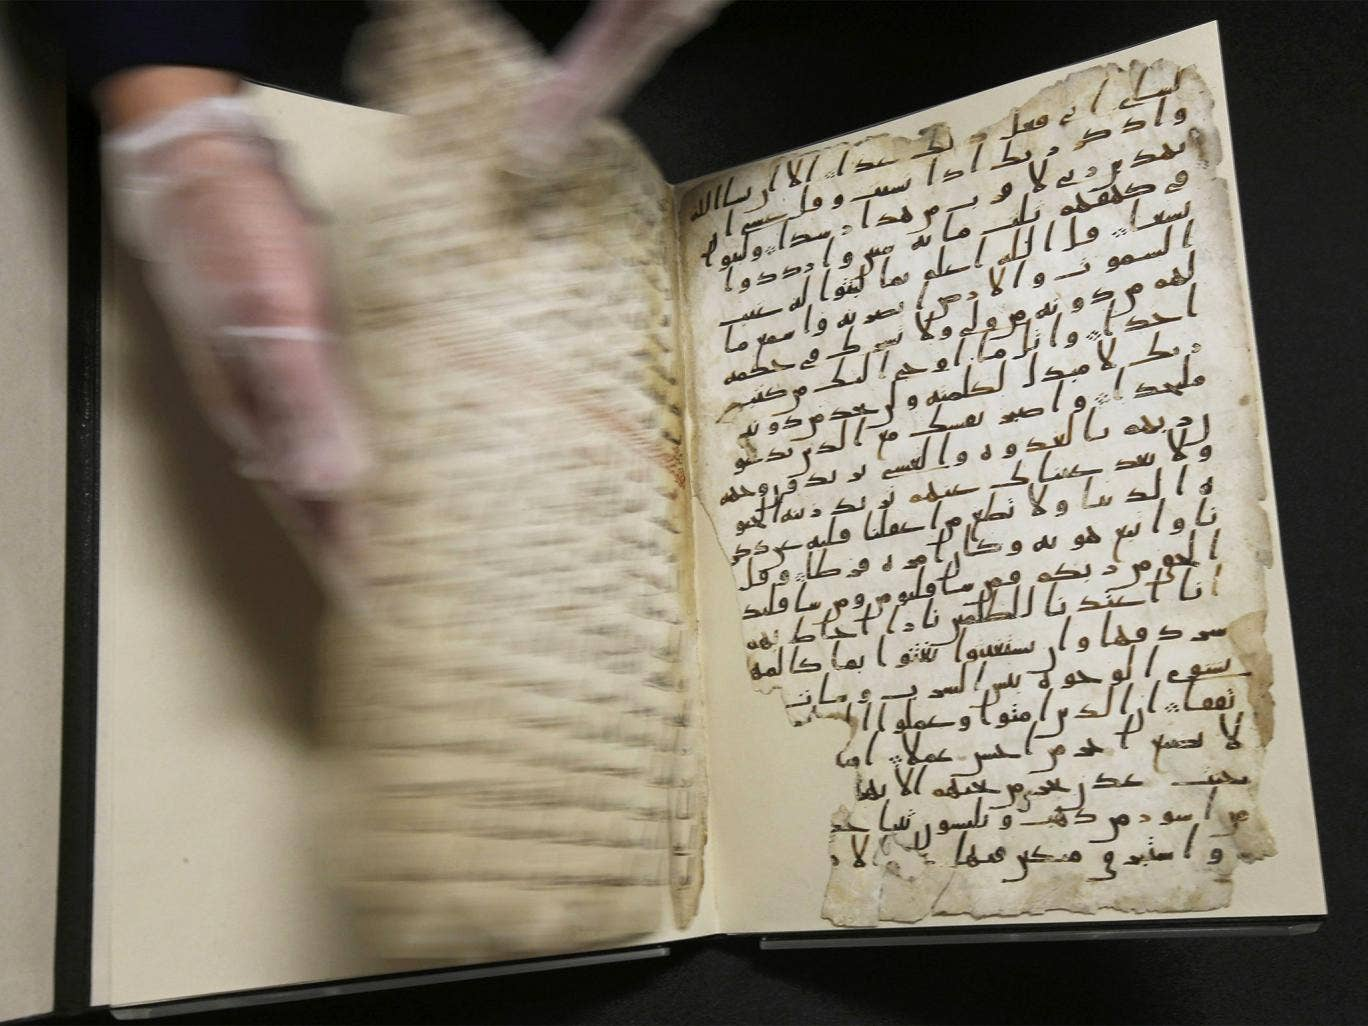 The University of Birmingham says parts of a Koran manuscript in its library are from one of the oldest copies of the Islamic text in the world